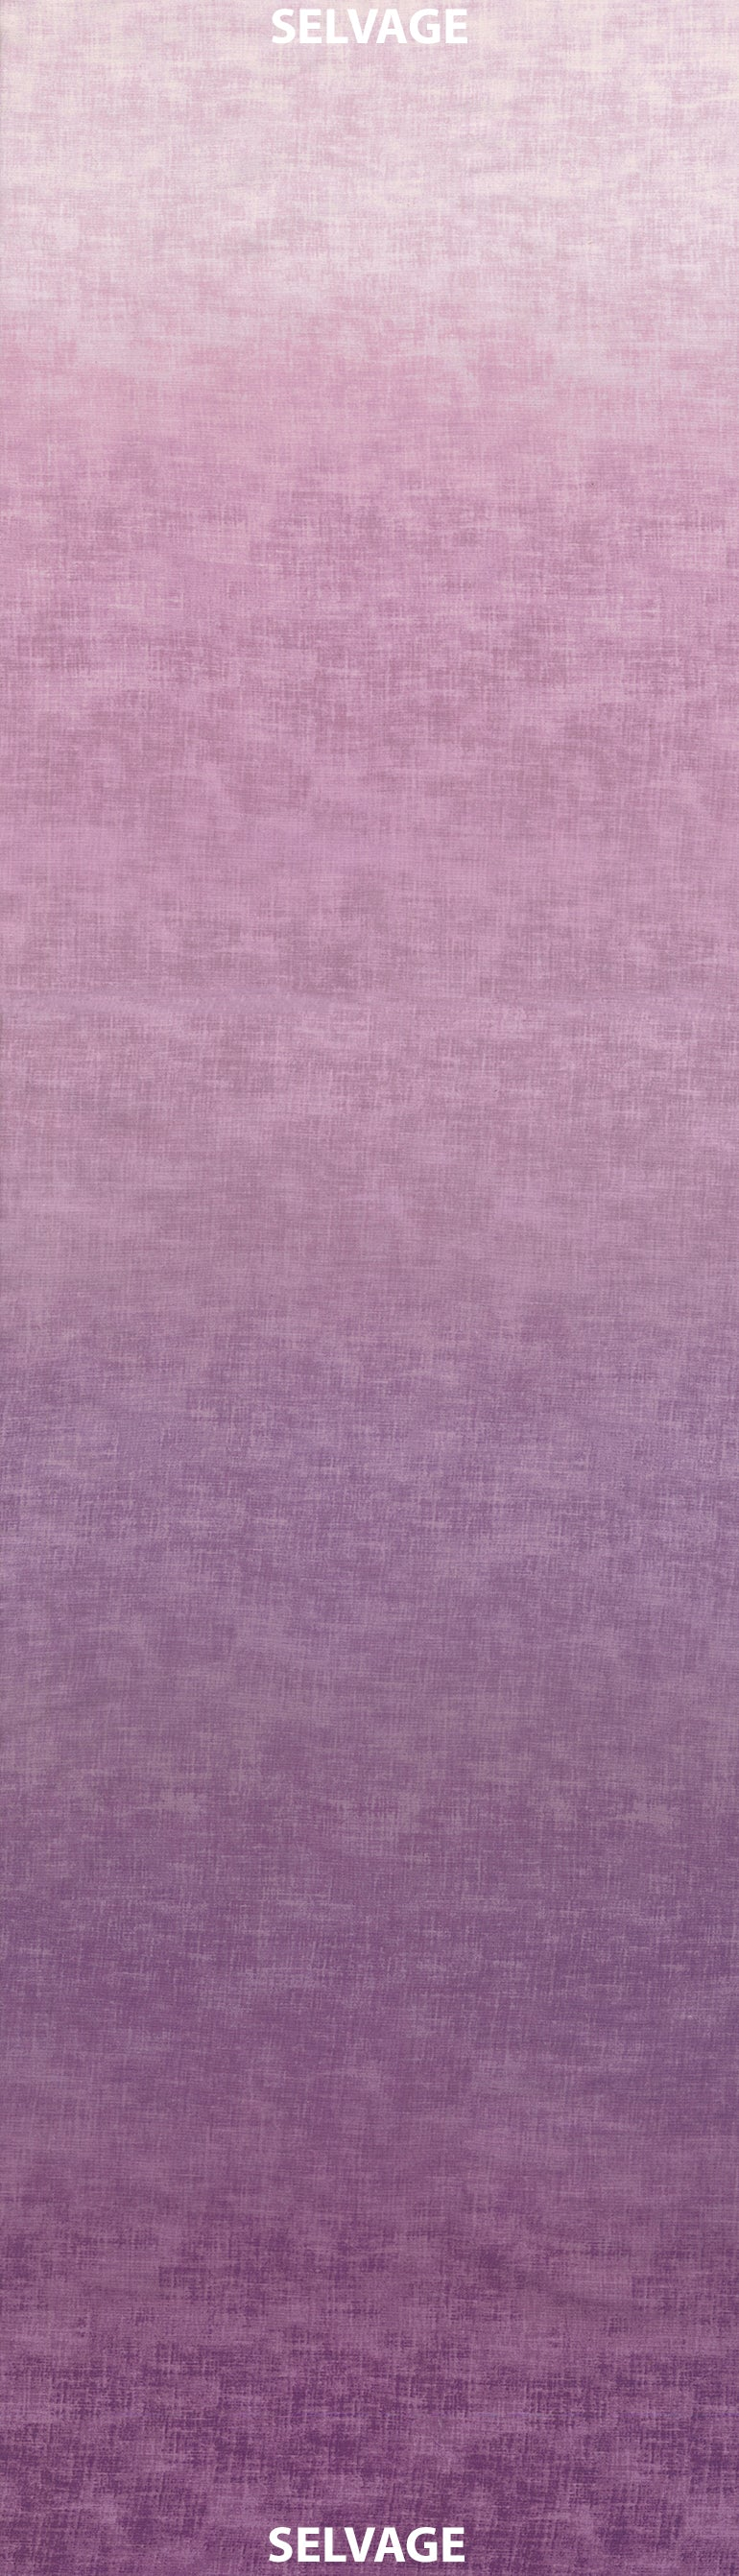 Purple Gradient Shades Light to Dark Blender Cotton Fabric - Vera Fabrics